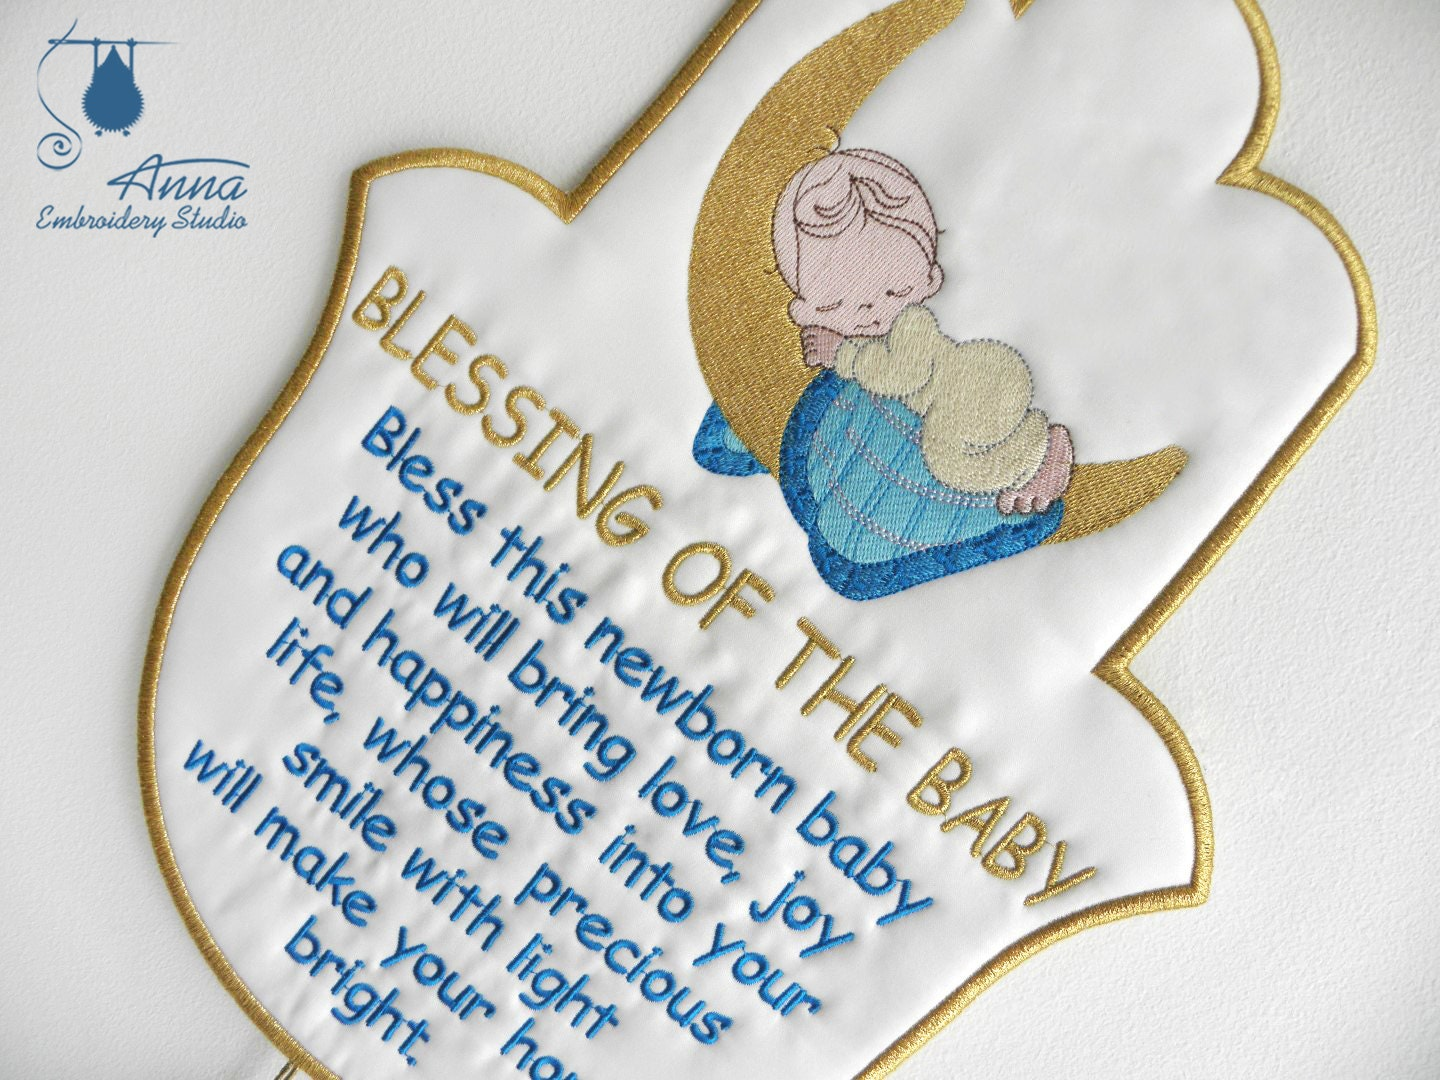 Embroidered Hamsa Baby Blessing Newborn Baby Gift Judaica